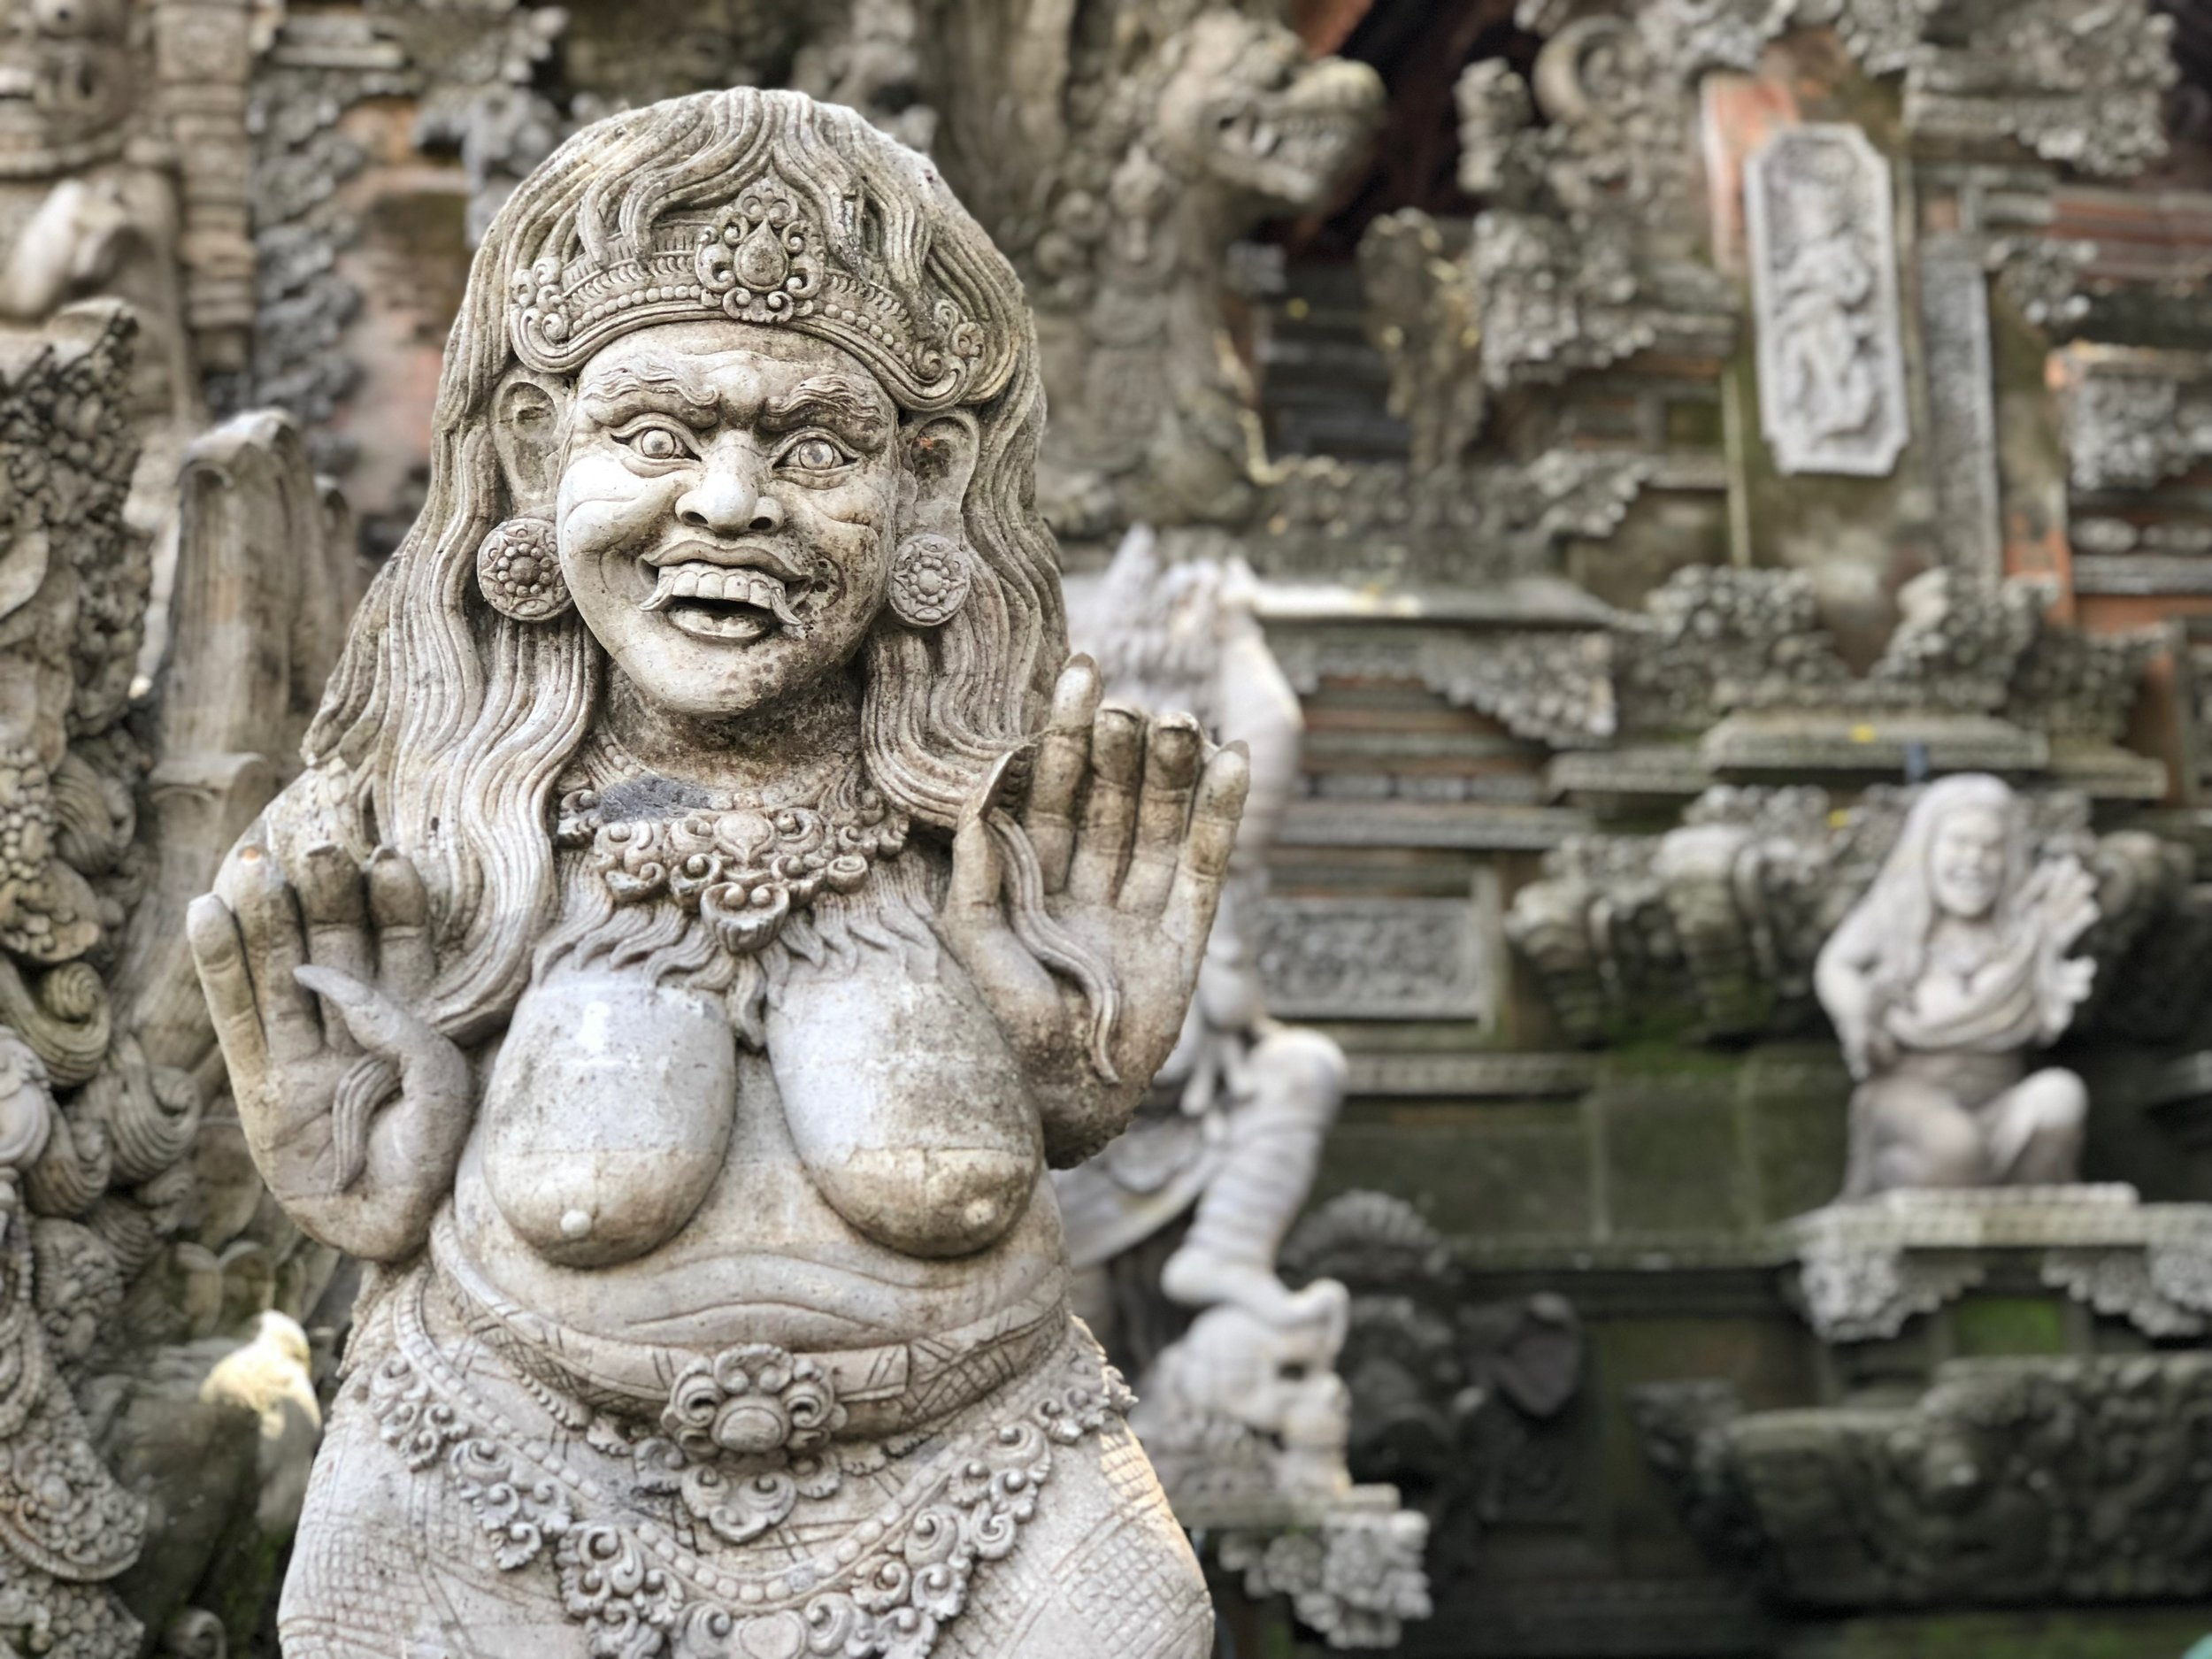 NSFW: The temple is covered with depictions of bare-breasted demonic women